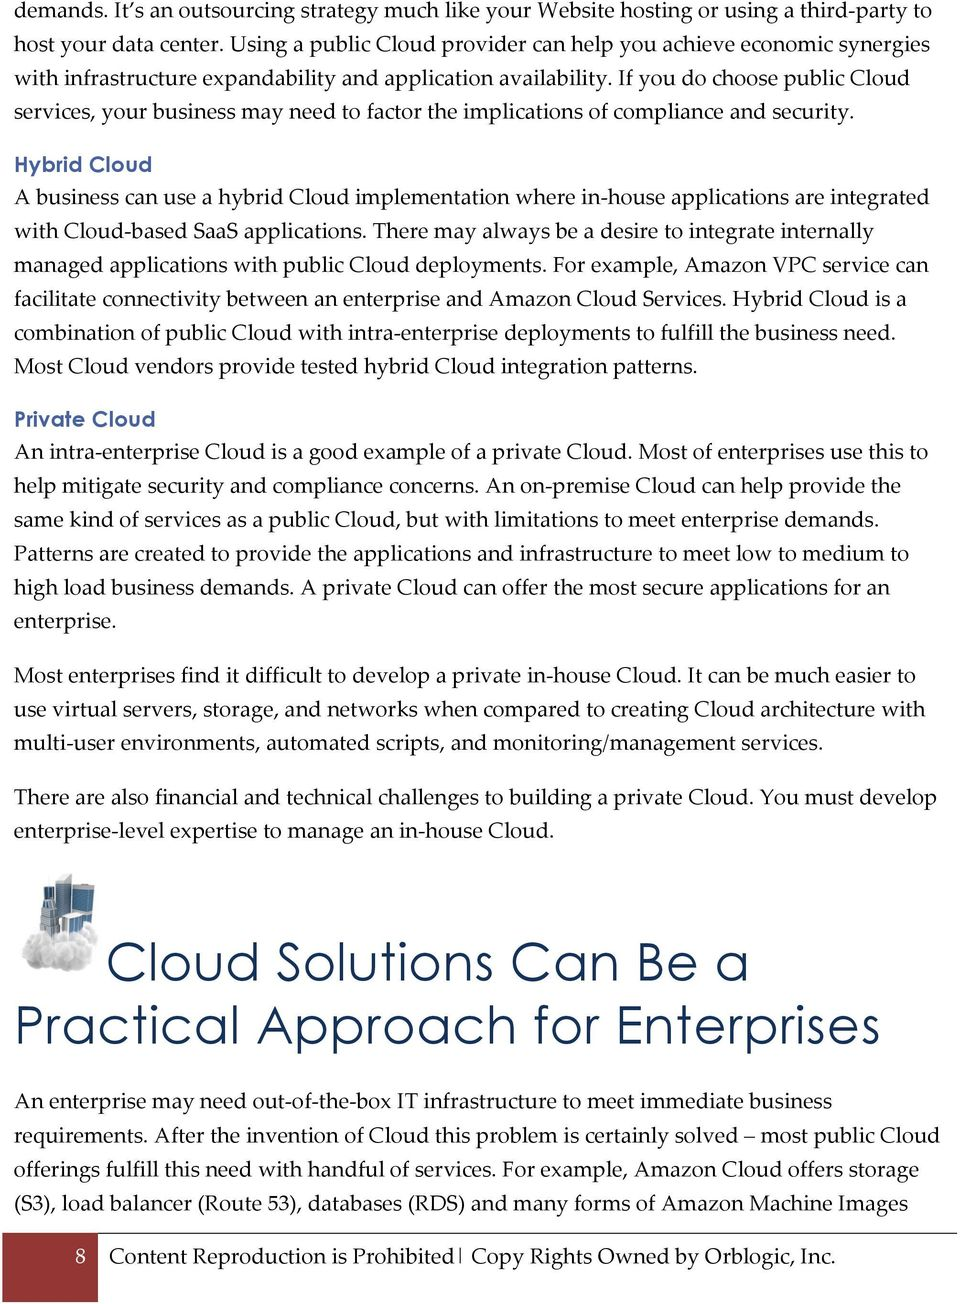 If you do choose public Cloud services, your business may need to factor the implications of compliance and security.